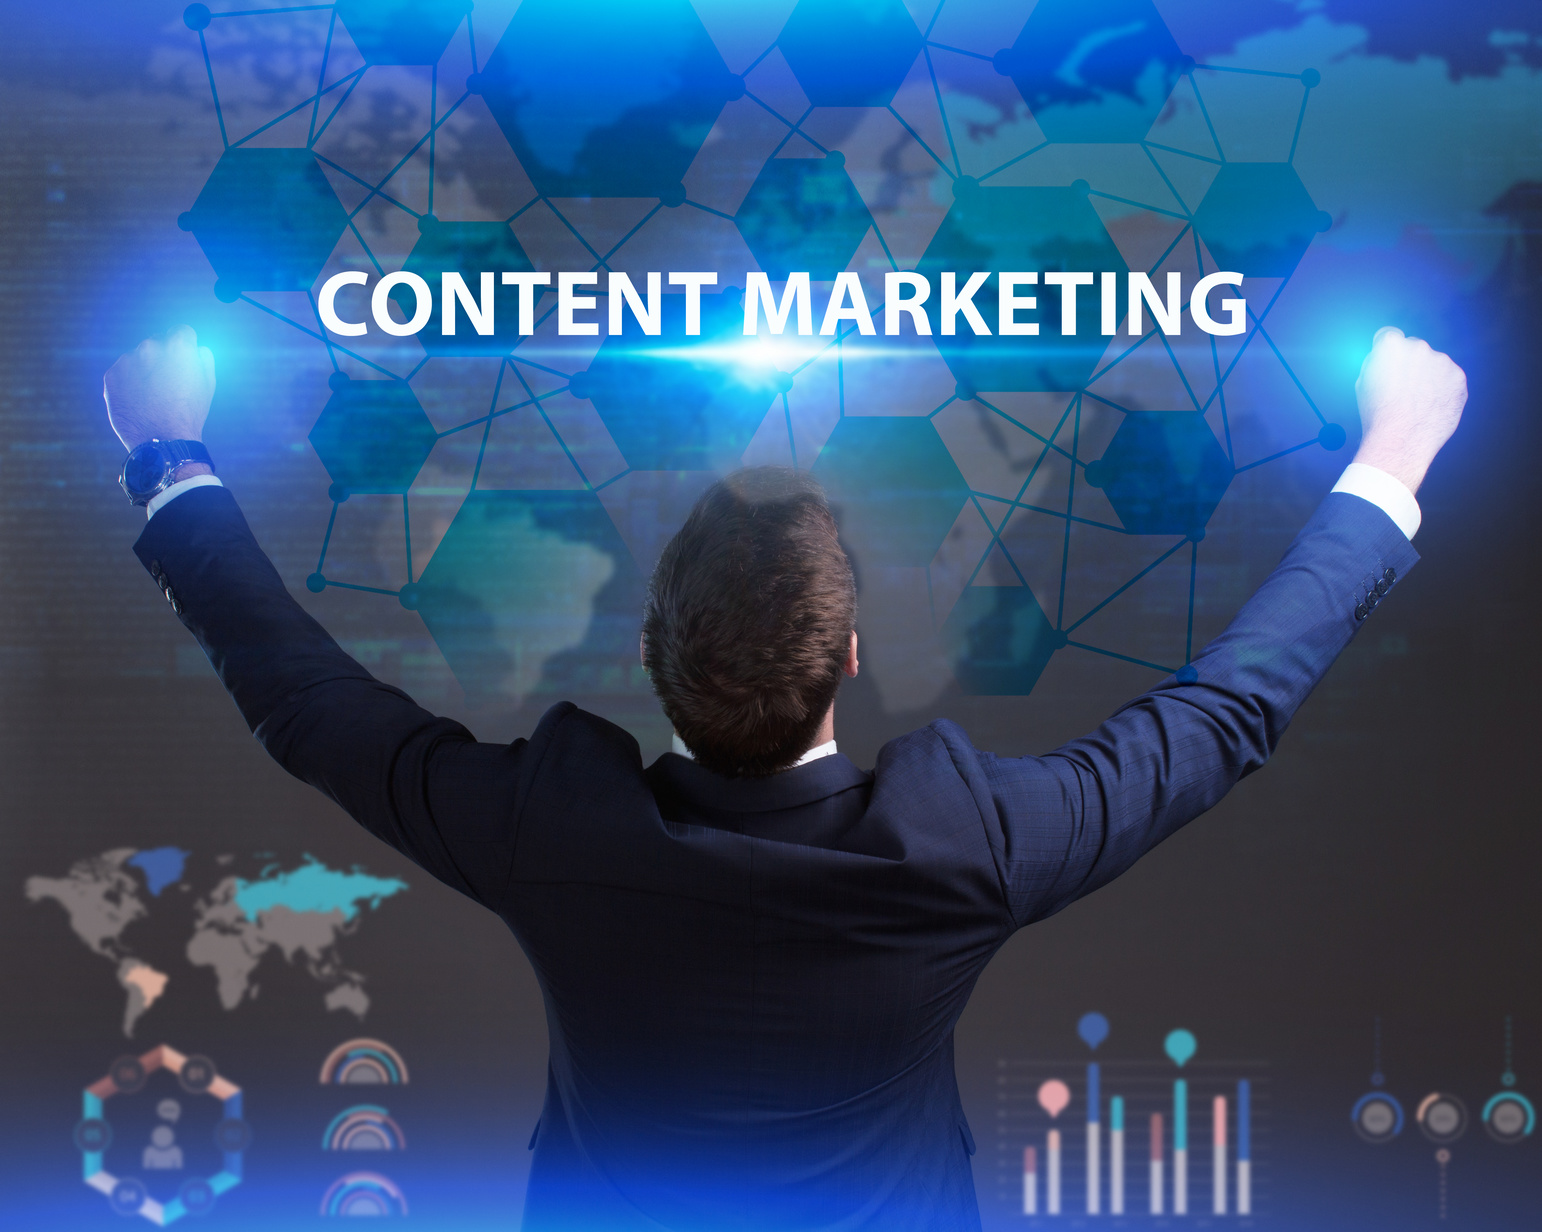 Image for 10 Creative Ways to Use Content Marketing to Grow Your Small Business | AllBusiness.com